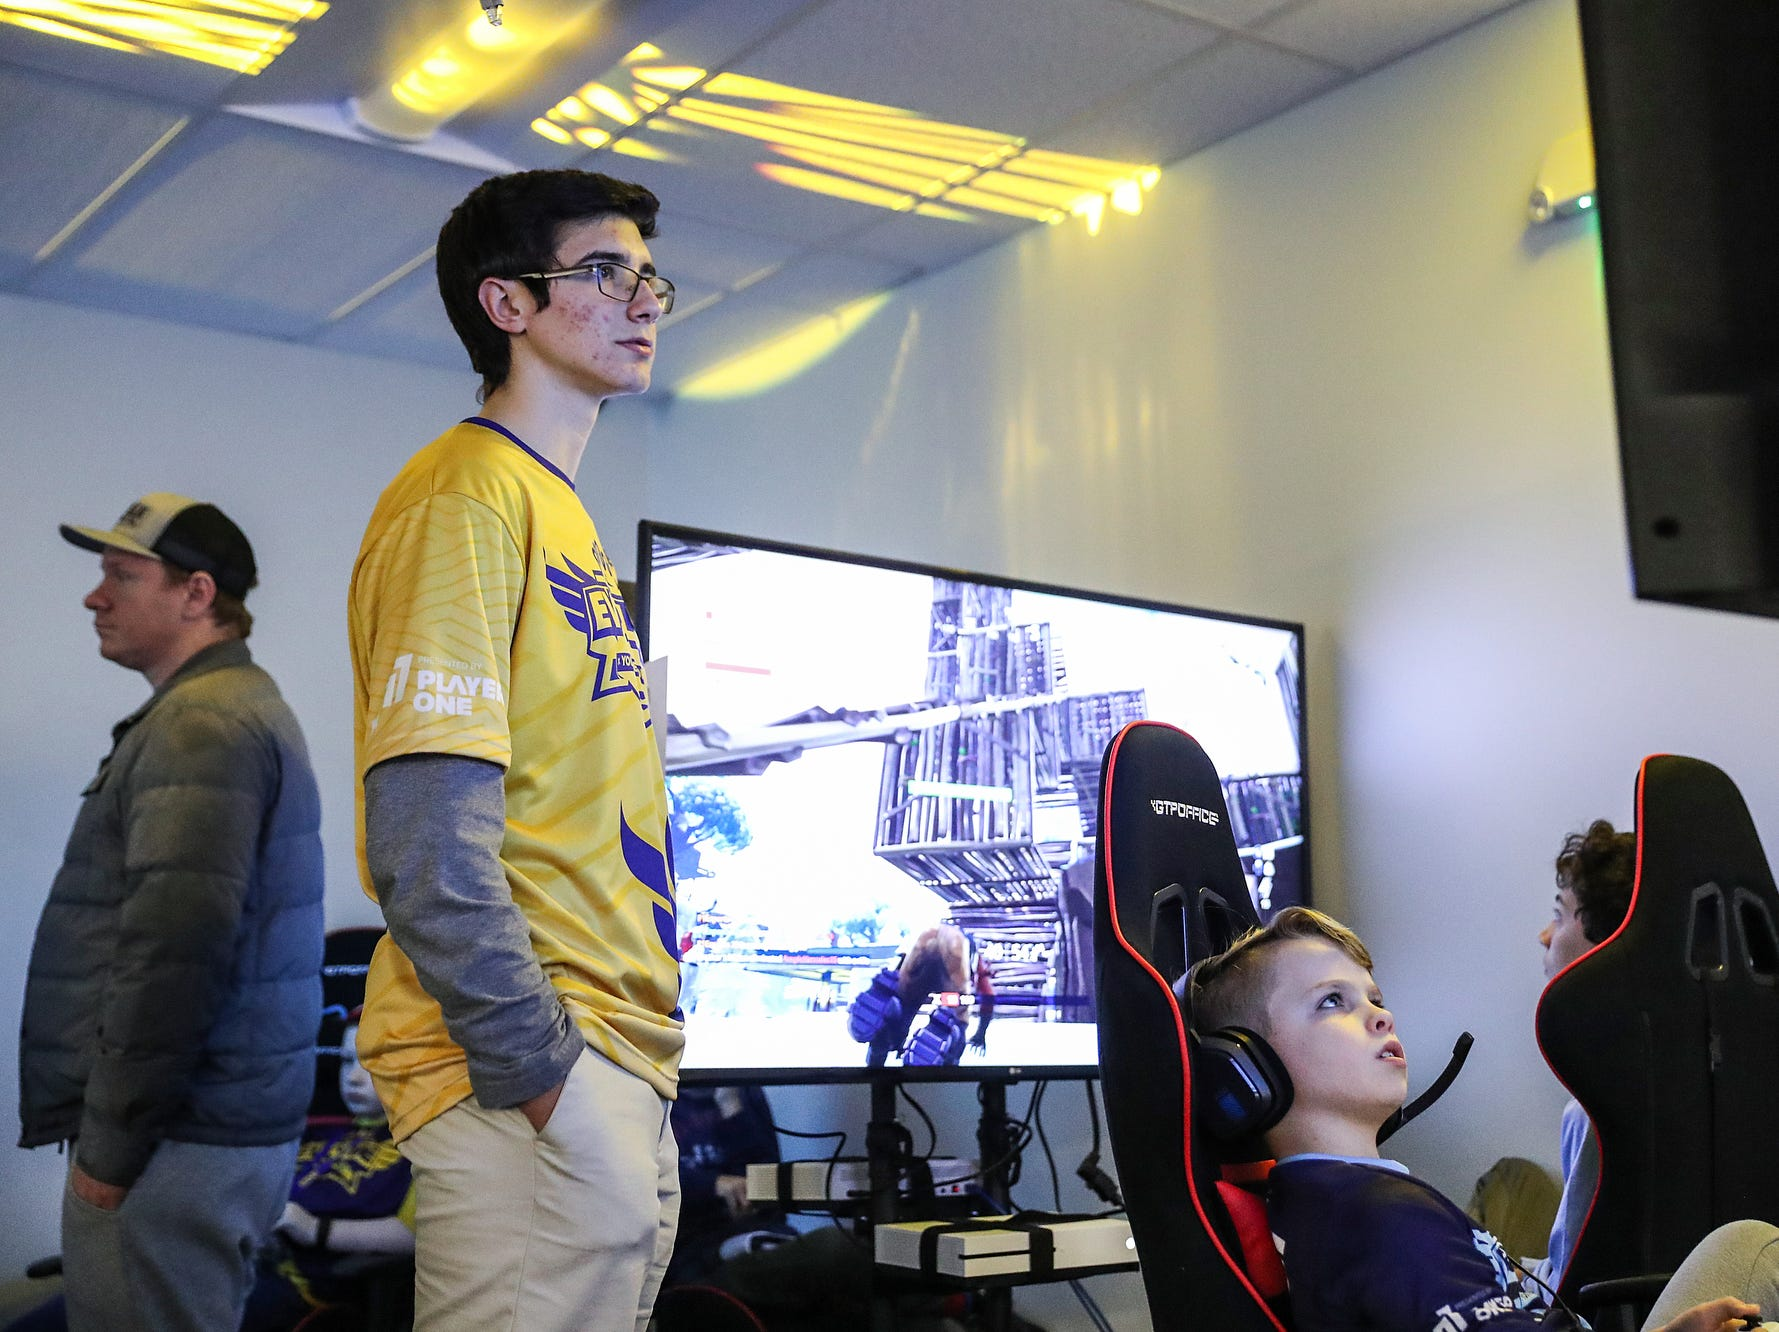 At left, coach Ignacio Salusso, 17, oversees team play during an Evolve Youth Sports practice at the Player One arena in Carmel, Ind., Thursday, Jan. 24, 2019. Scott Wise, original founder of Scotty's Brewhouse, has partnered with Player One Esports for his next venture, a video game sports league that has attracted around 200 kids so far.